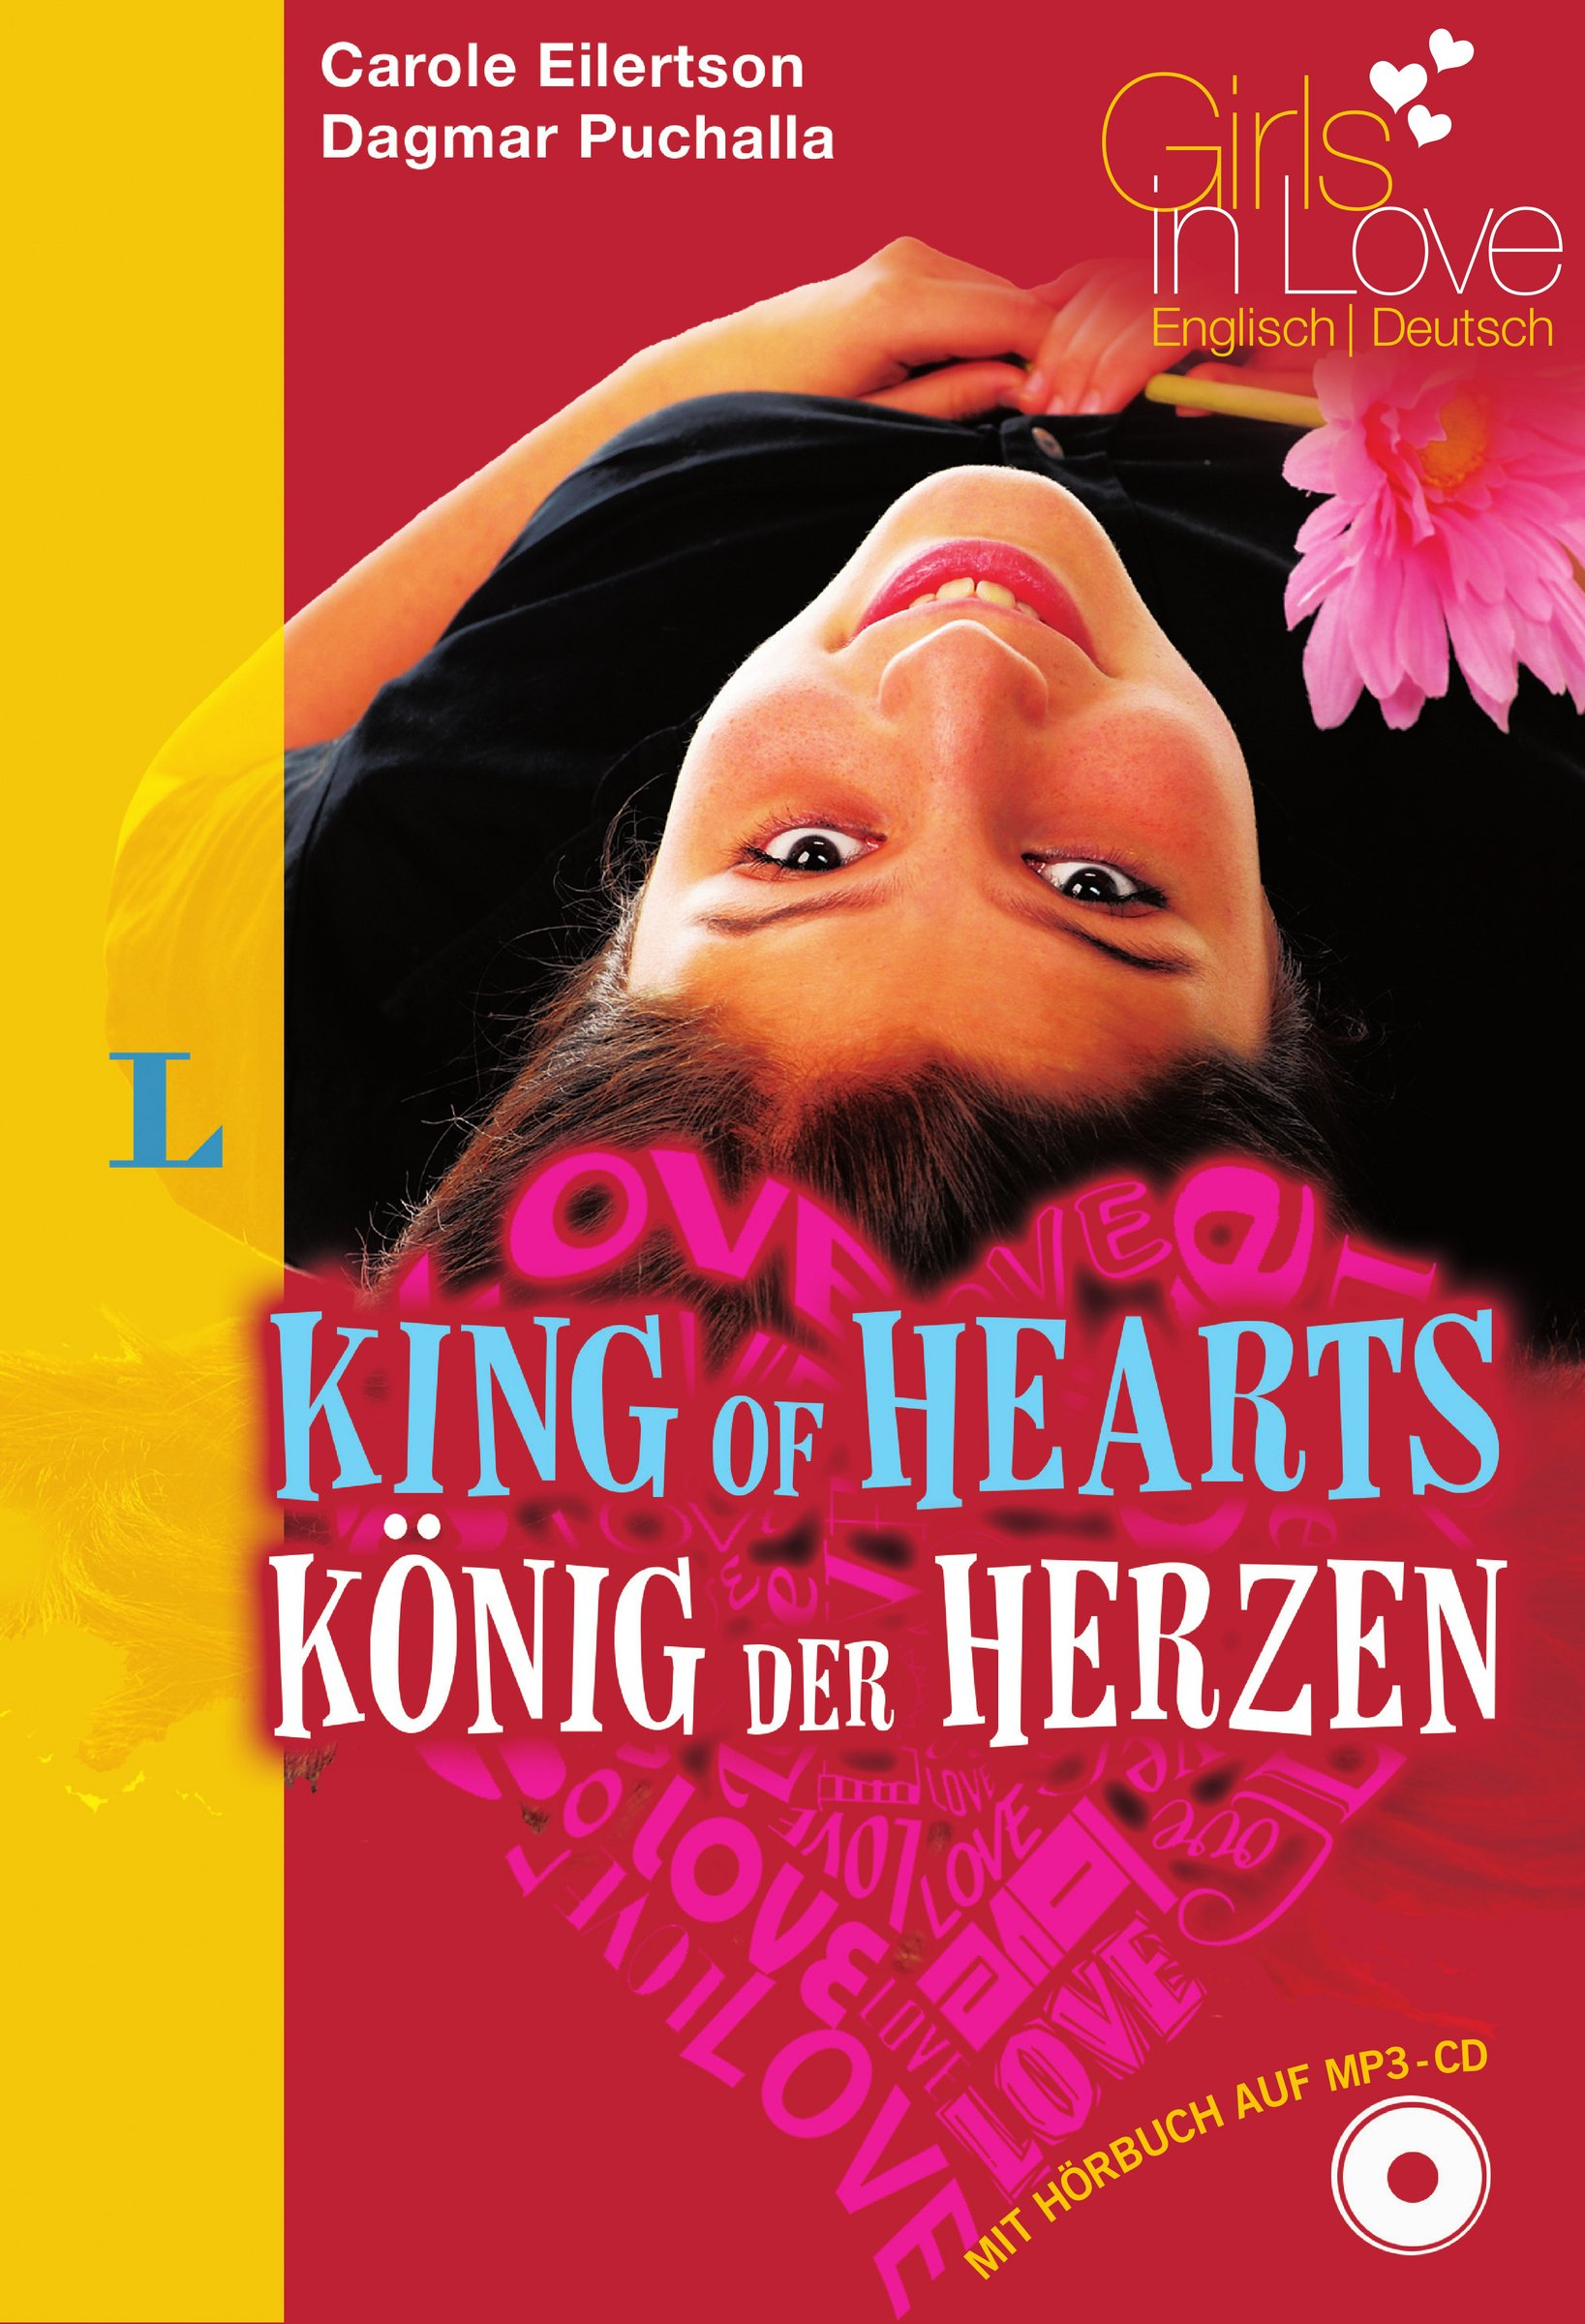 King of Hearts - König der Herzen - Buch + Hörbuch (MP3-CD) (Girls in Love)